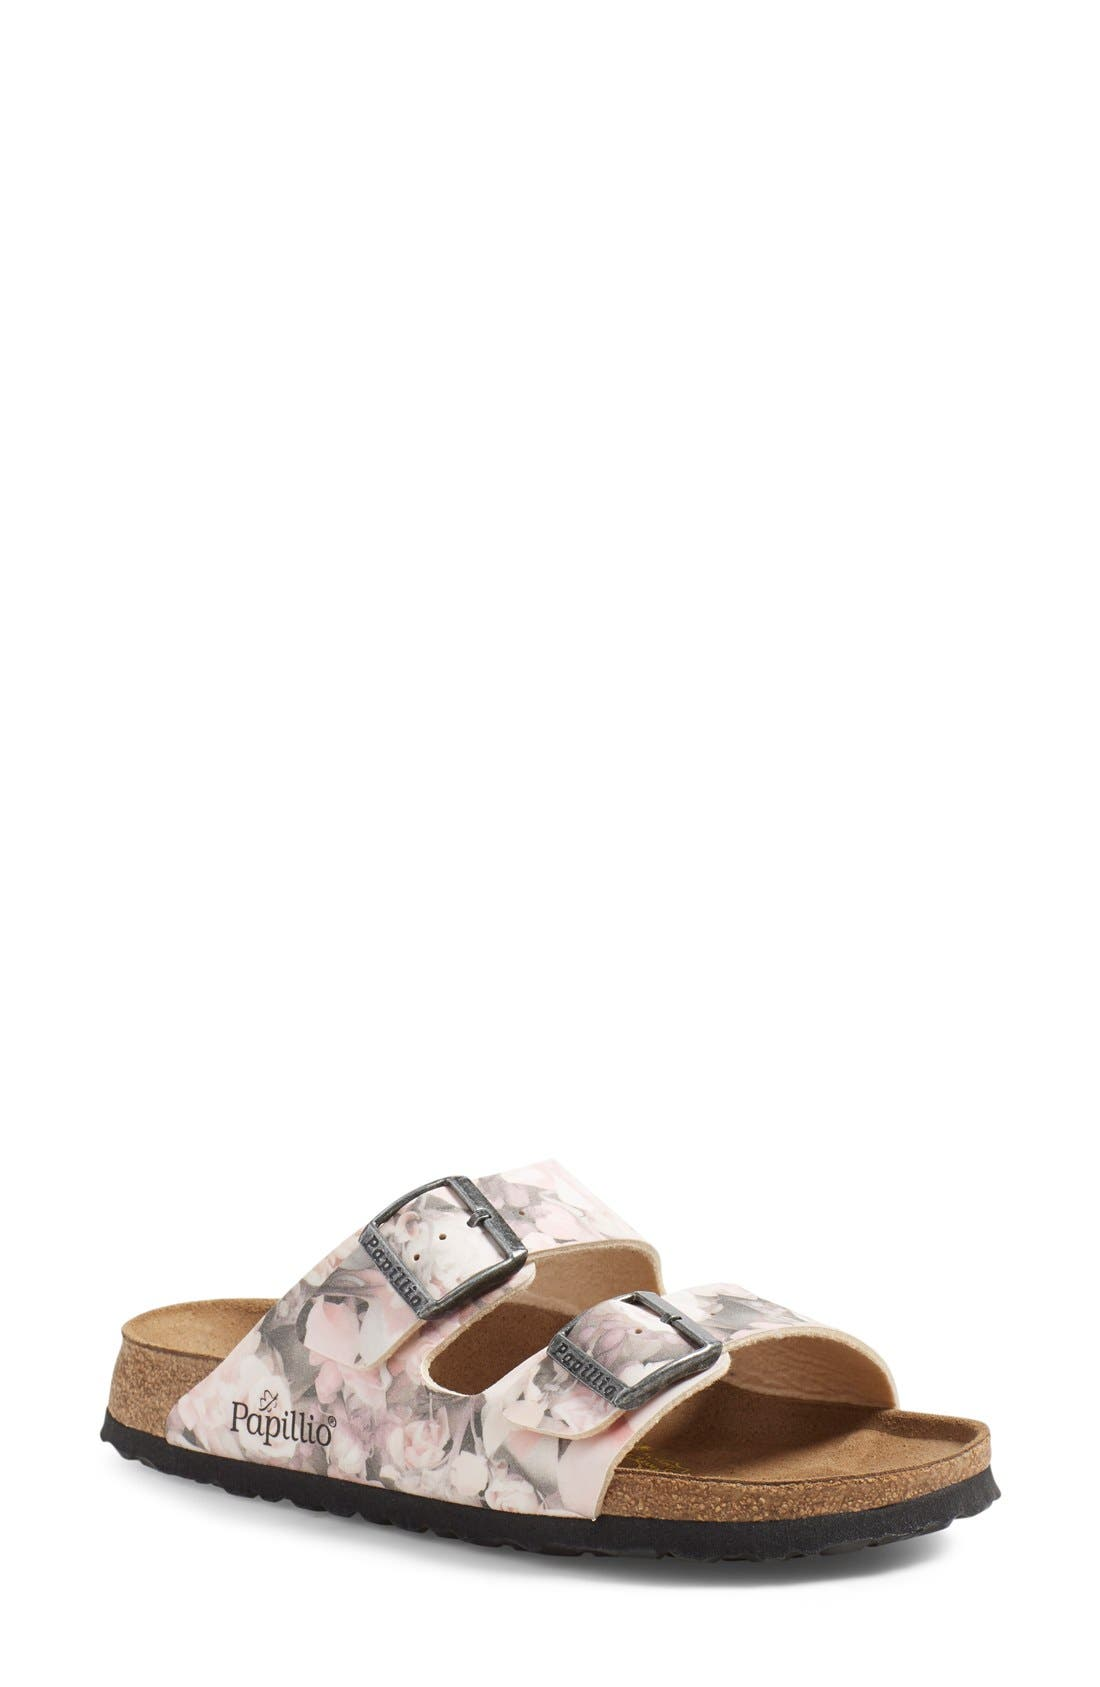 Papillio by Birkenstock 'Arizona' Birko-Flor Sandal,                             Main thumbnail 1, color,                             Silky Rose Faux Leather